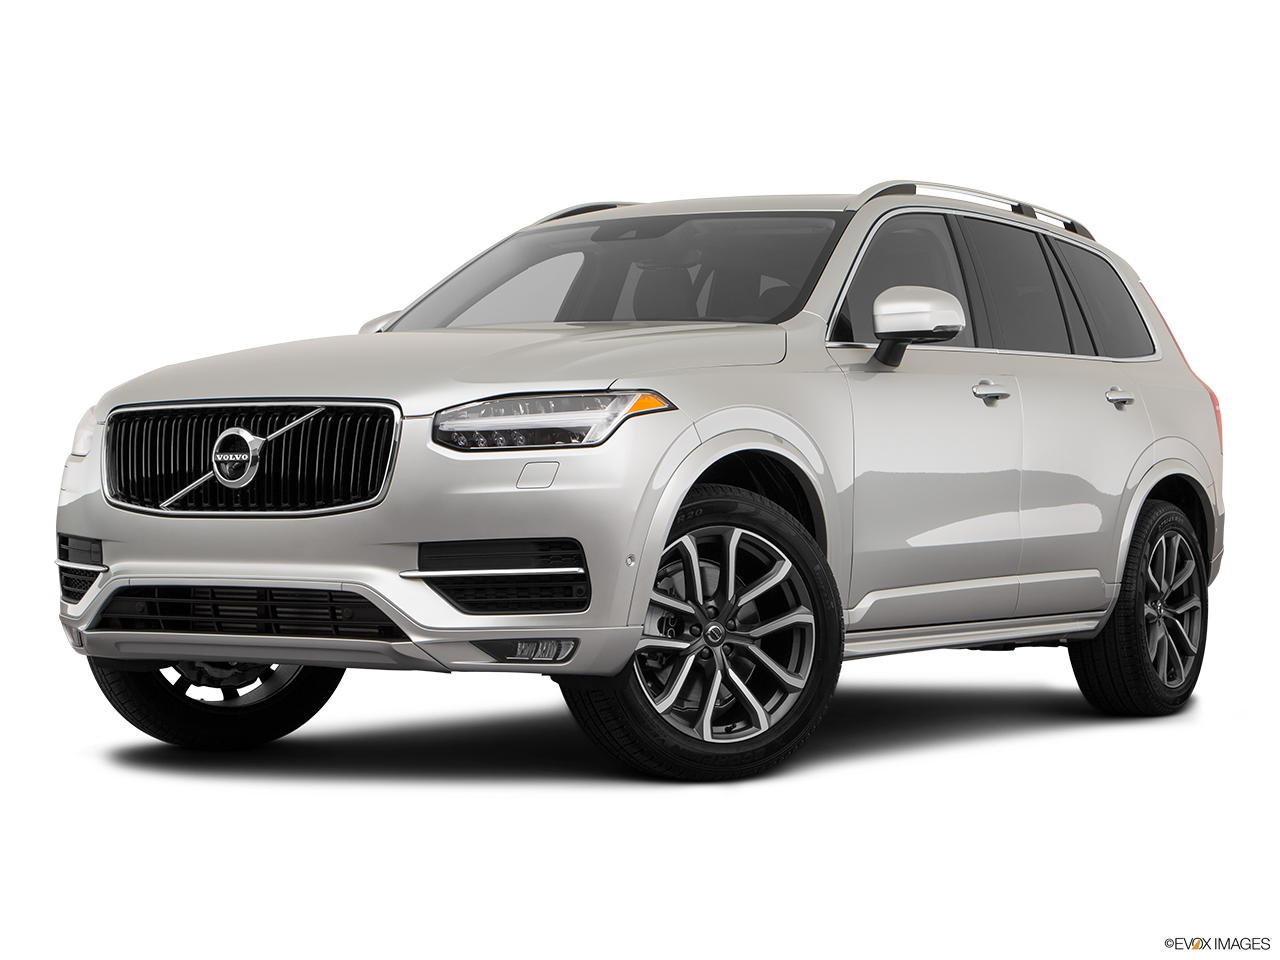 Three quart view of the Volvo XC90 PHEV